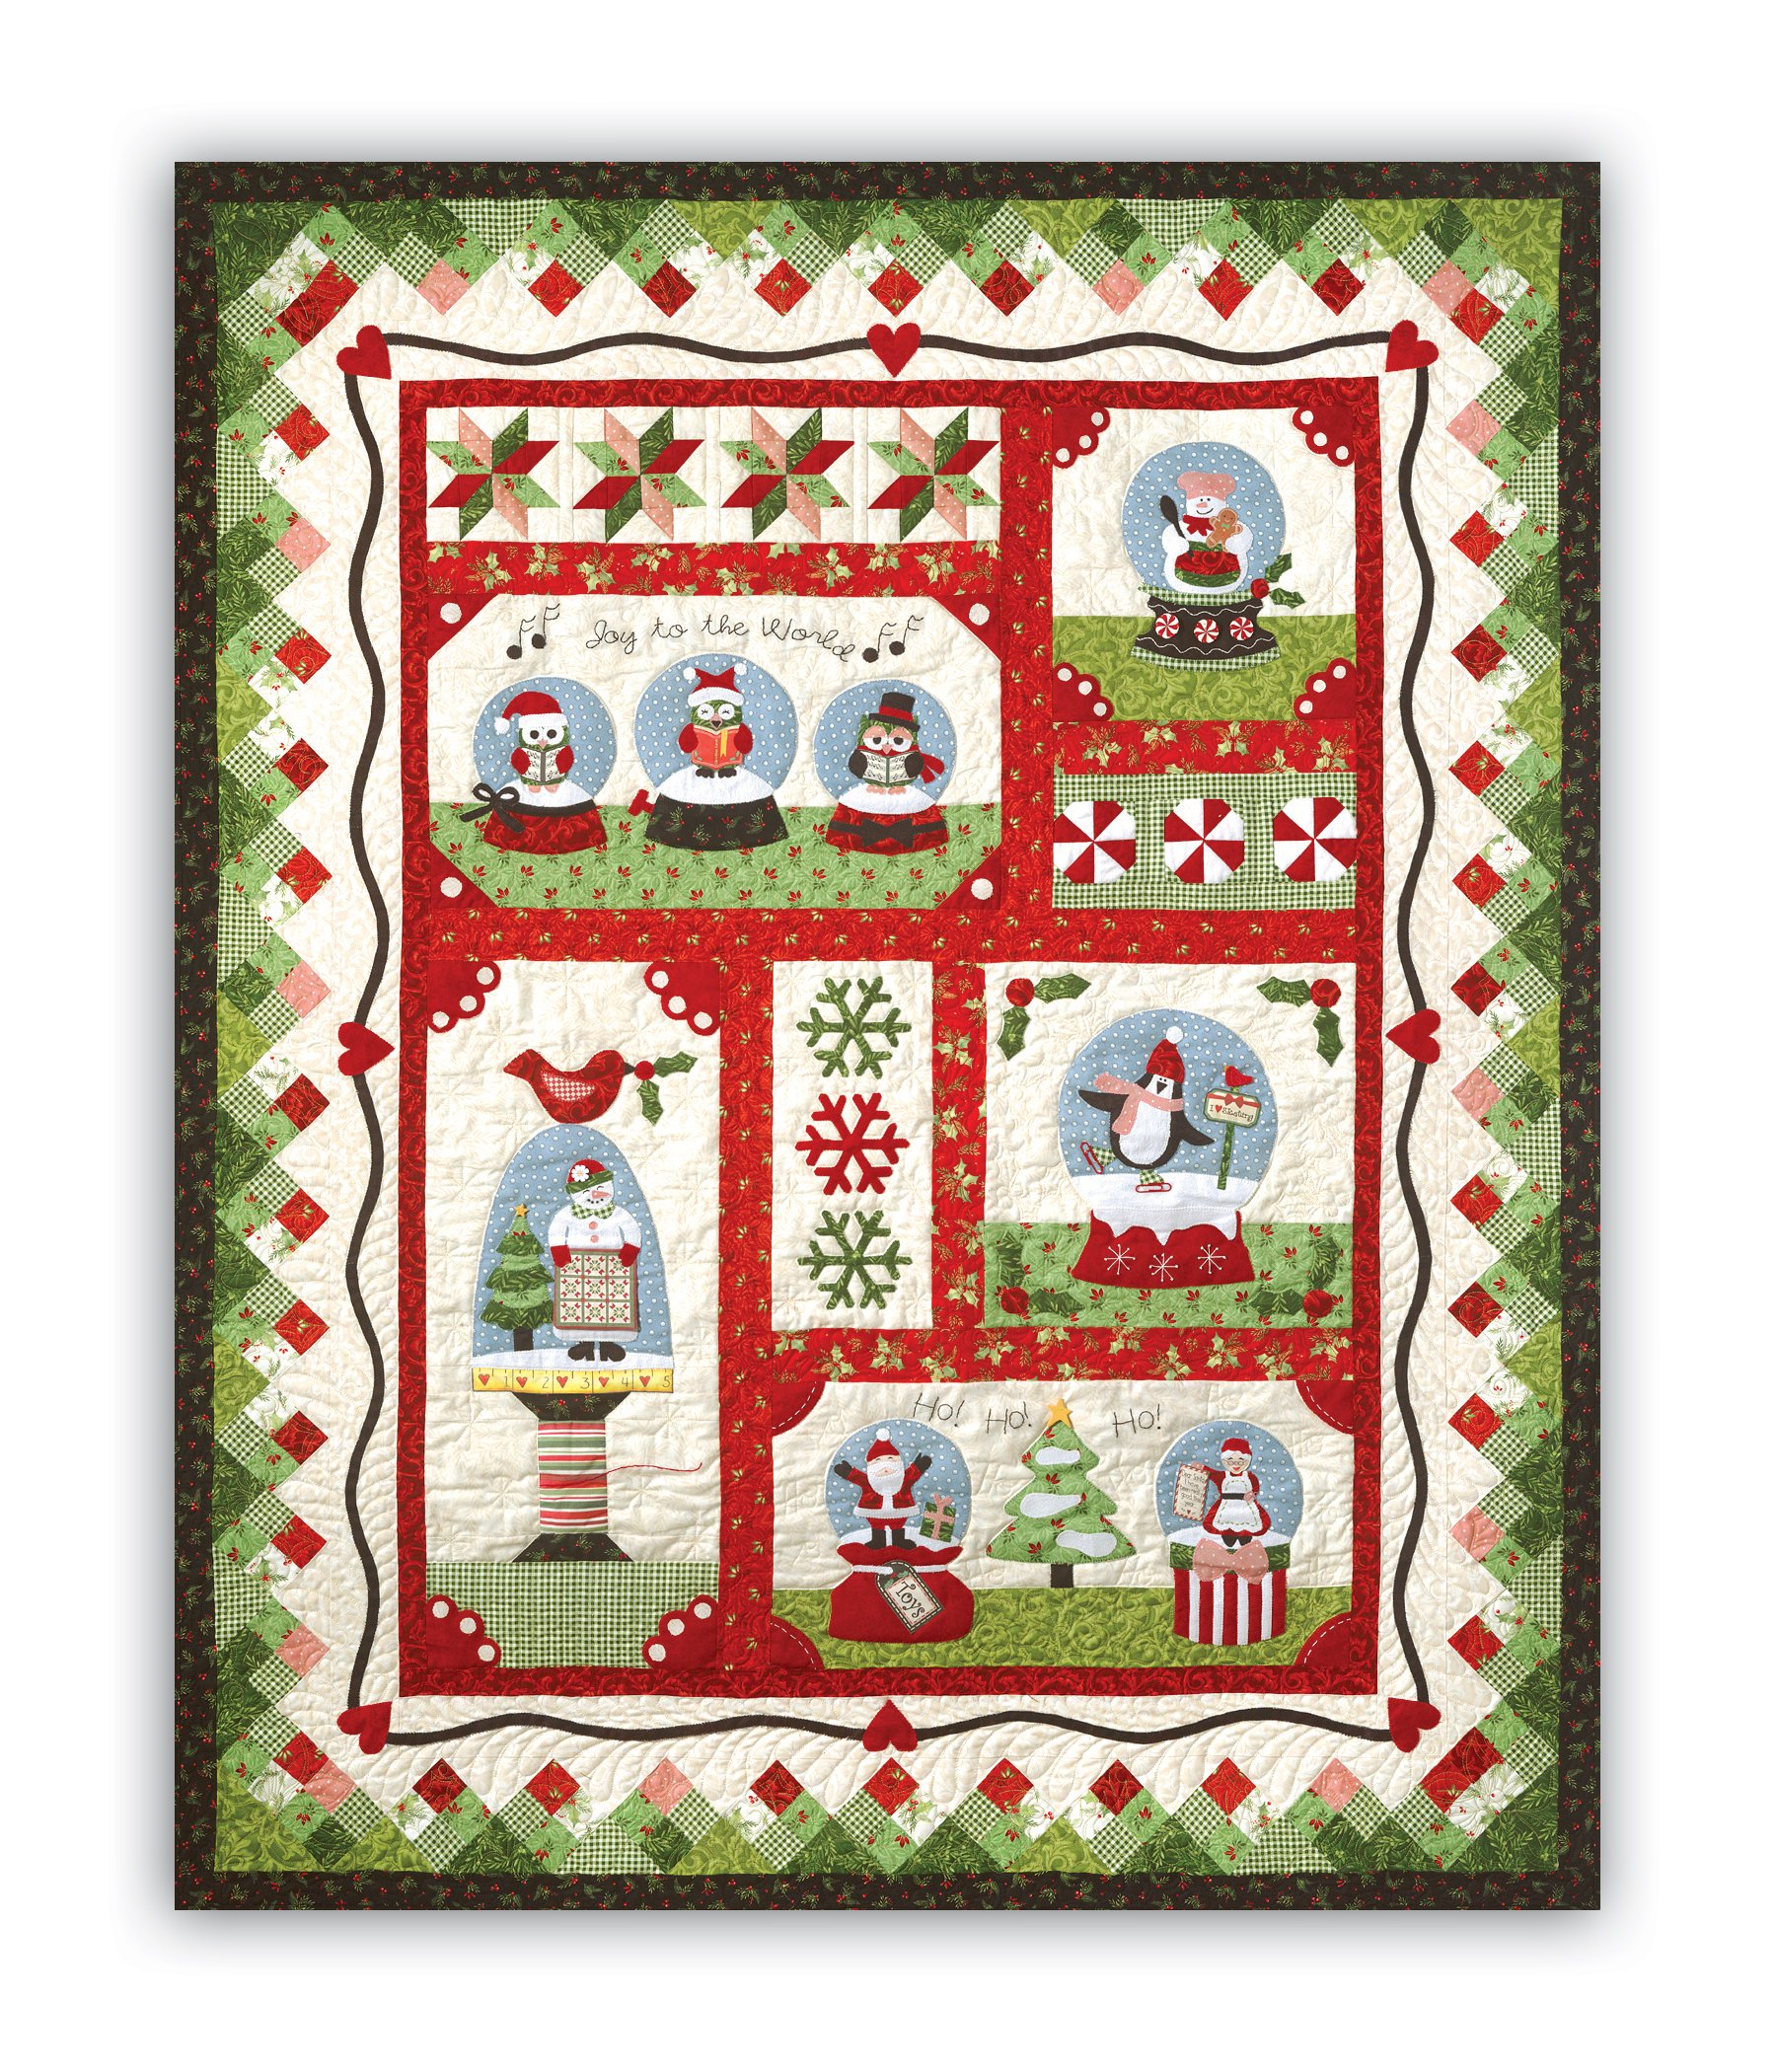 Snow Globe Quilt Kit - Includes All Fabrics, Specialty Fabrics and Patterns as Original